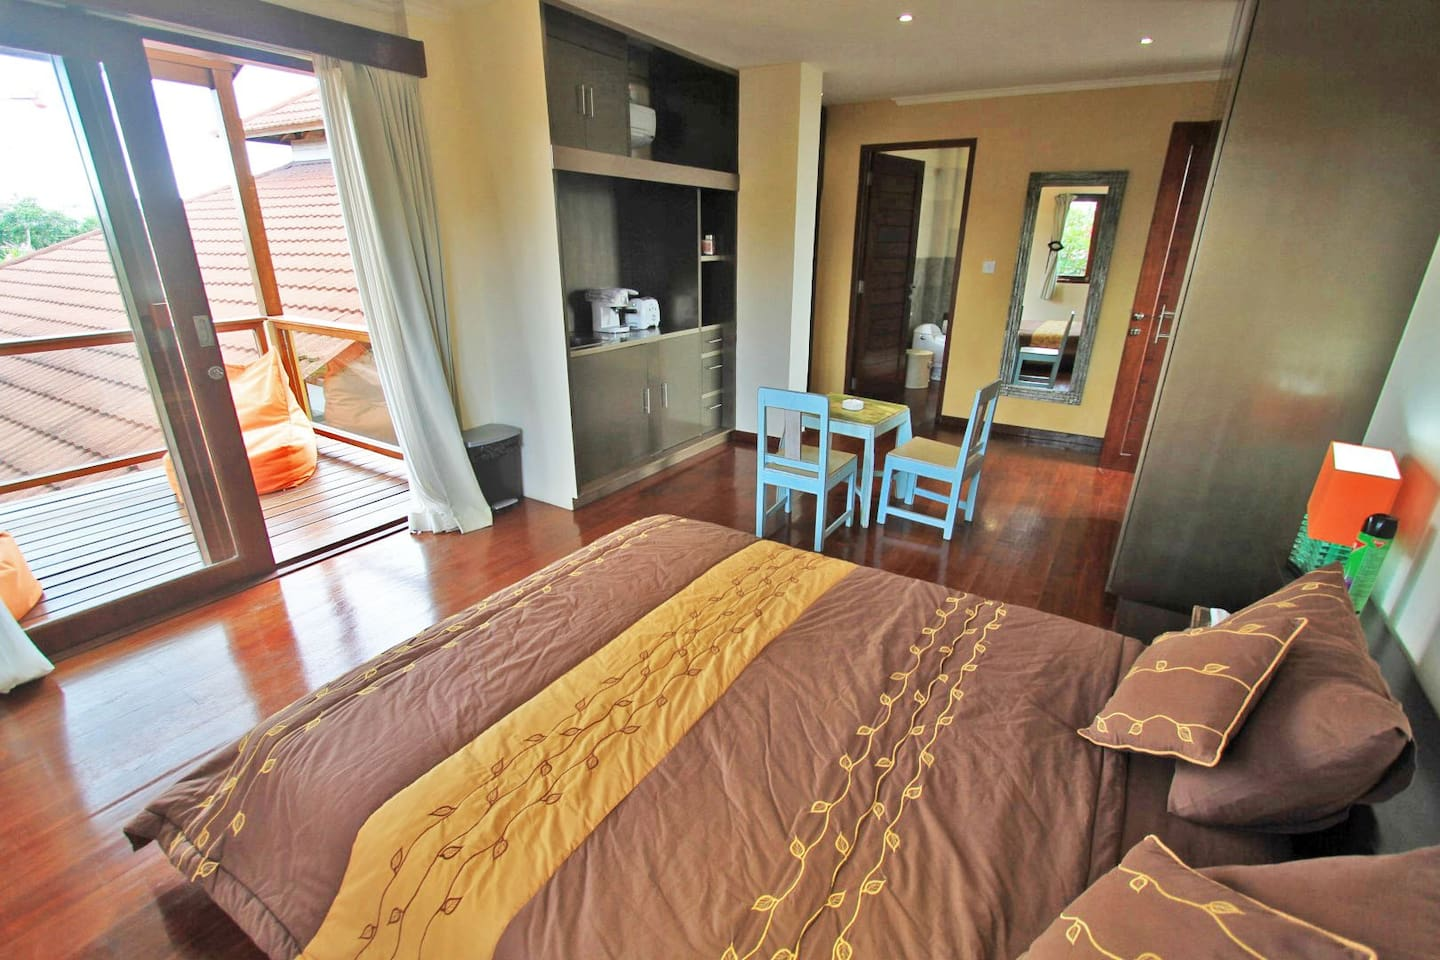 Overview of the studio with the bathroom on the back